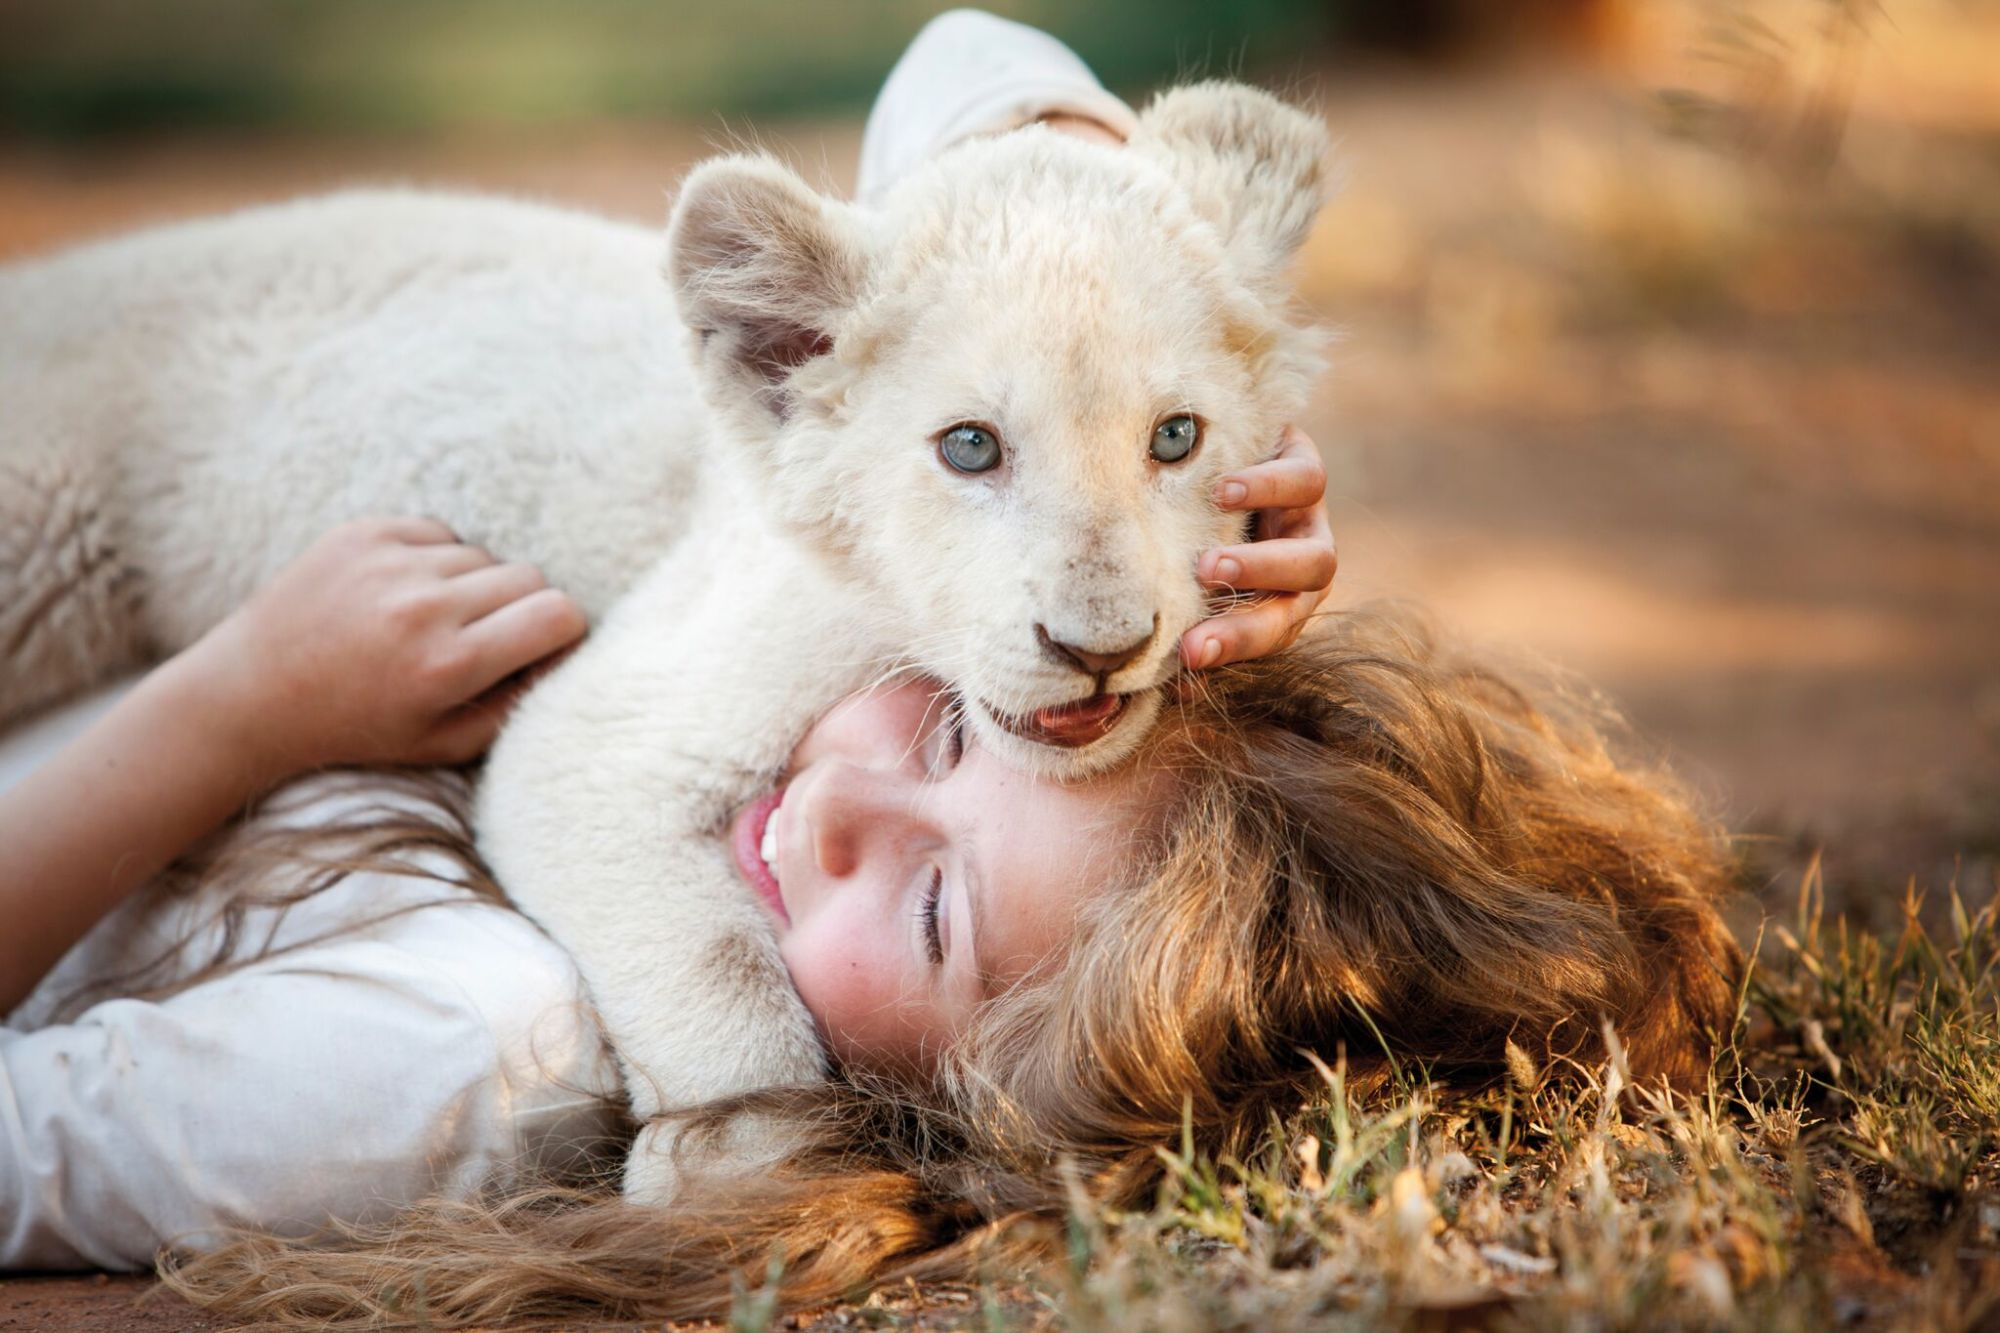 Daniah De Villiers, a breakout teenage actress in Mia and the White Lion